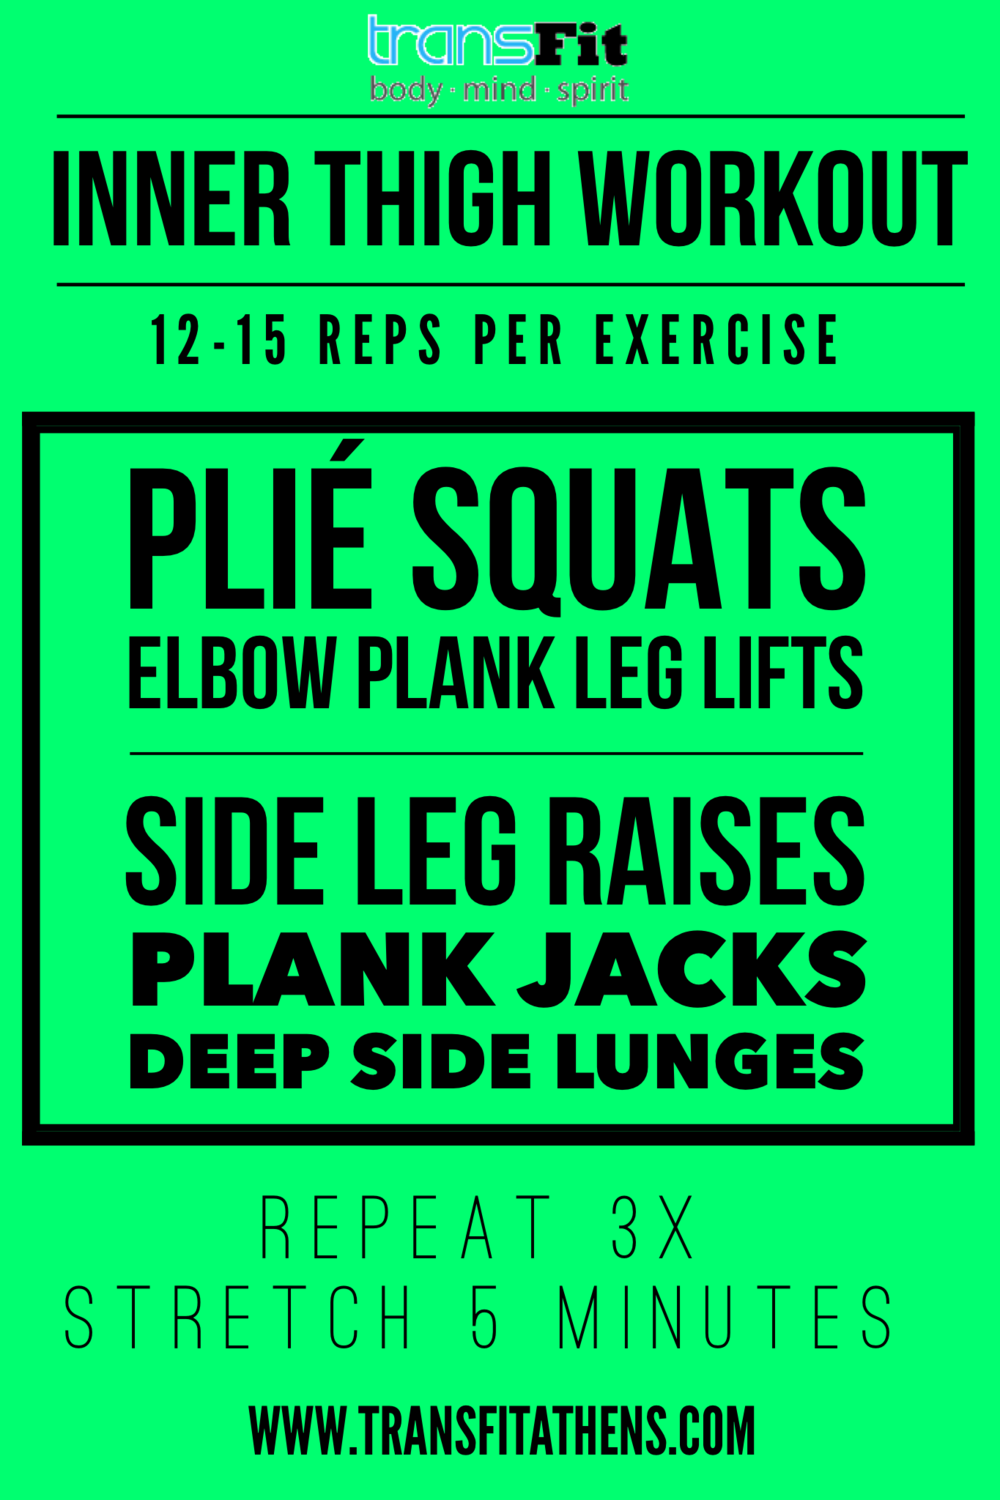 Inner Thigh Workout.PNG